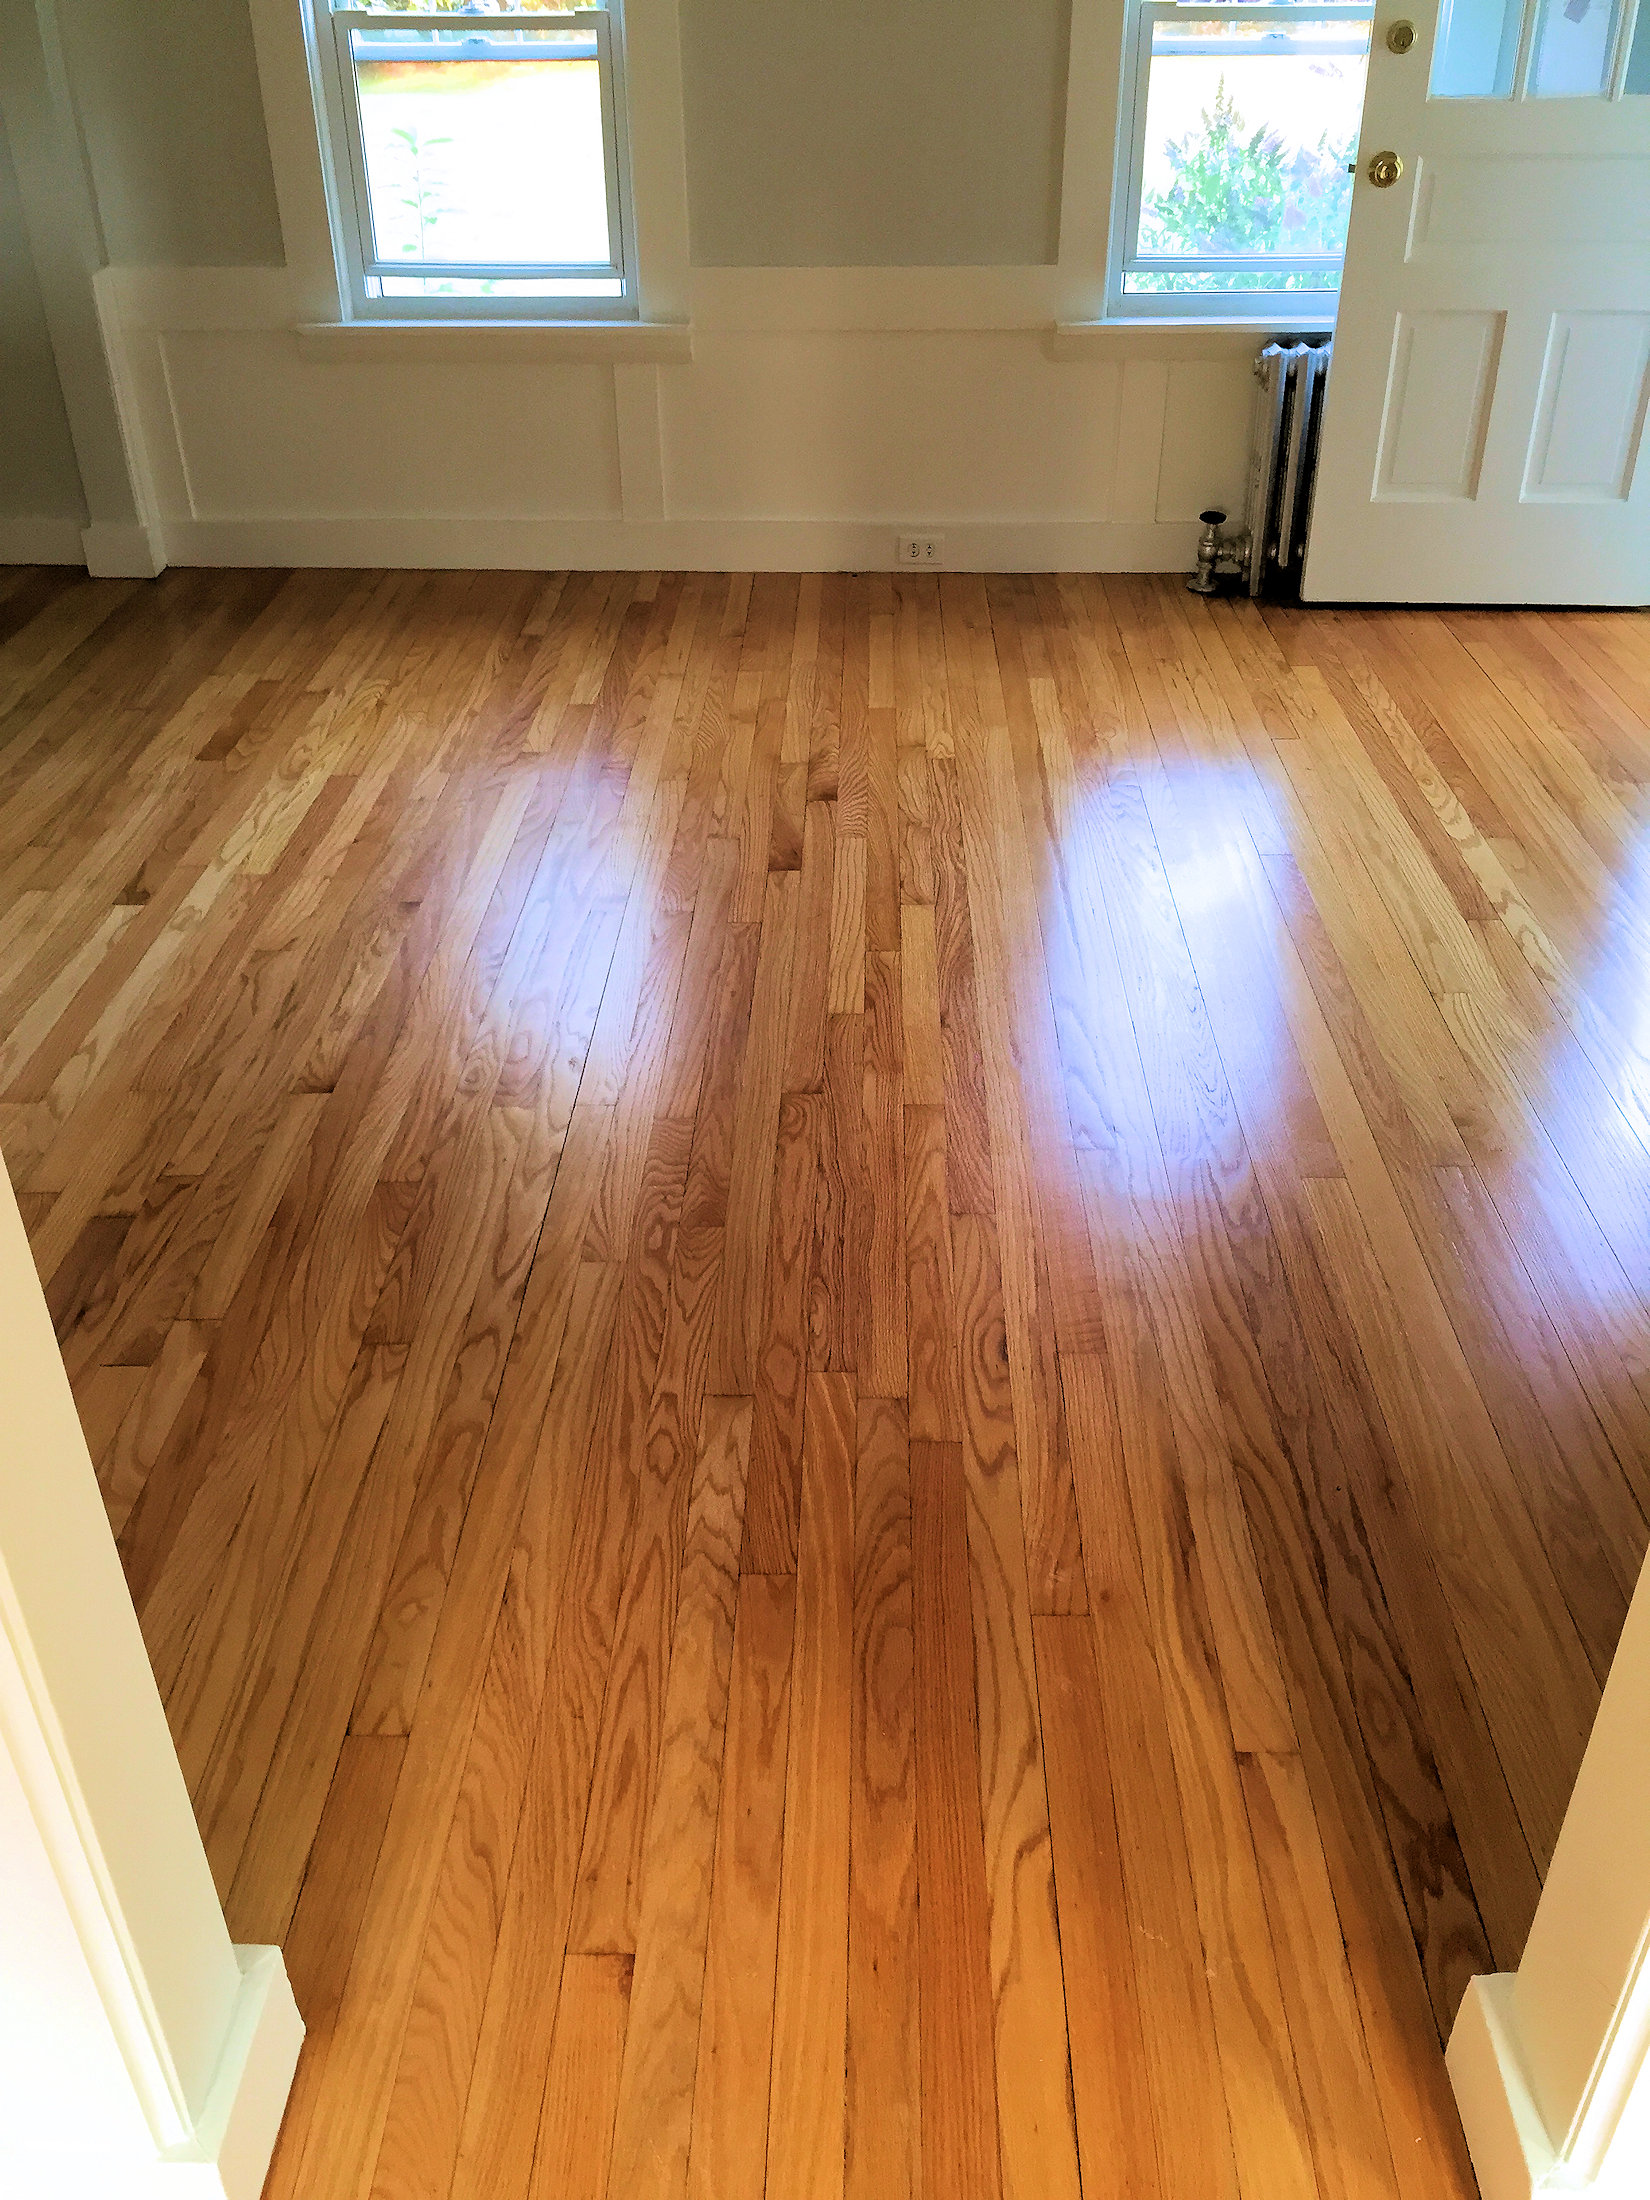 New wood flooring